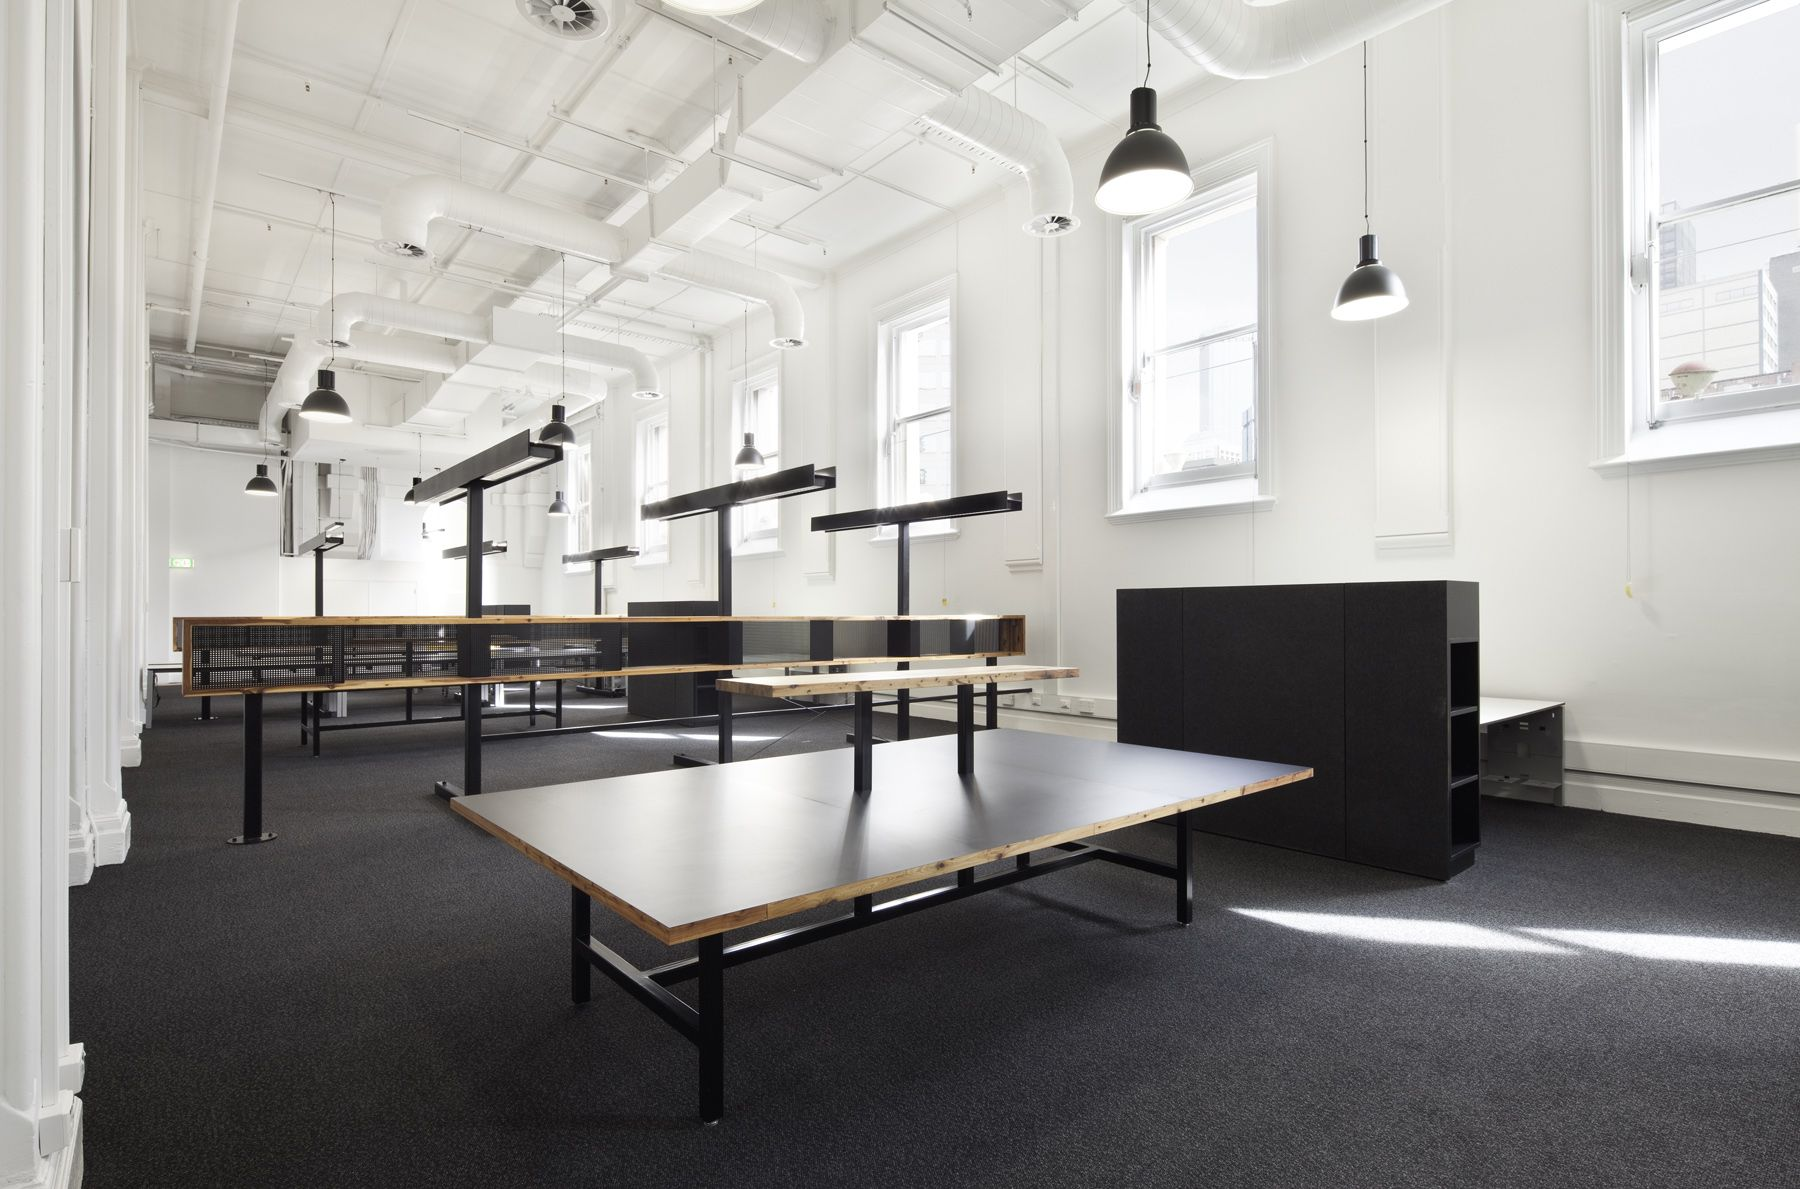 Origin office space in Melbourne  Victoria  Australia  designed by GroupGSA     Architecture Interiors   Pinterest   Meeting rooms  Office interiors and   Origin office space in Melbourne  Victoria  Australia  designed by  . Office Designers Melbourne. Home Design Ideas